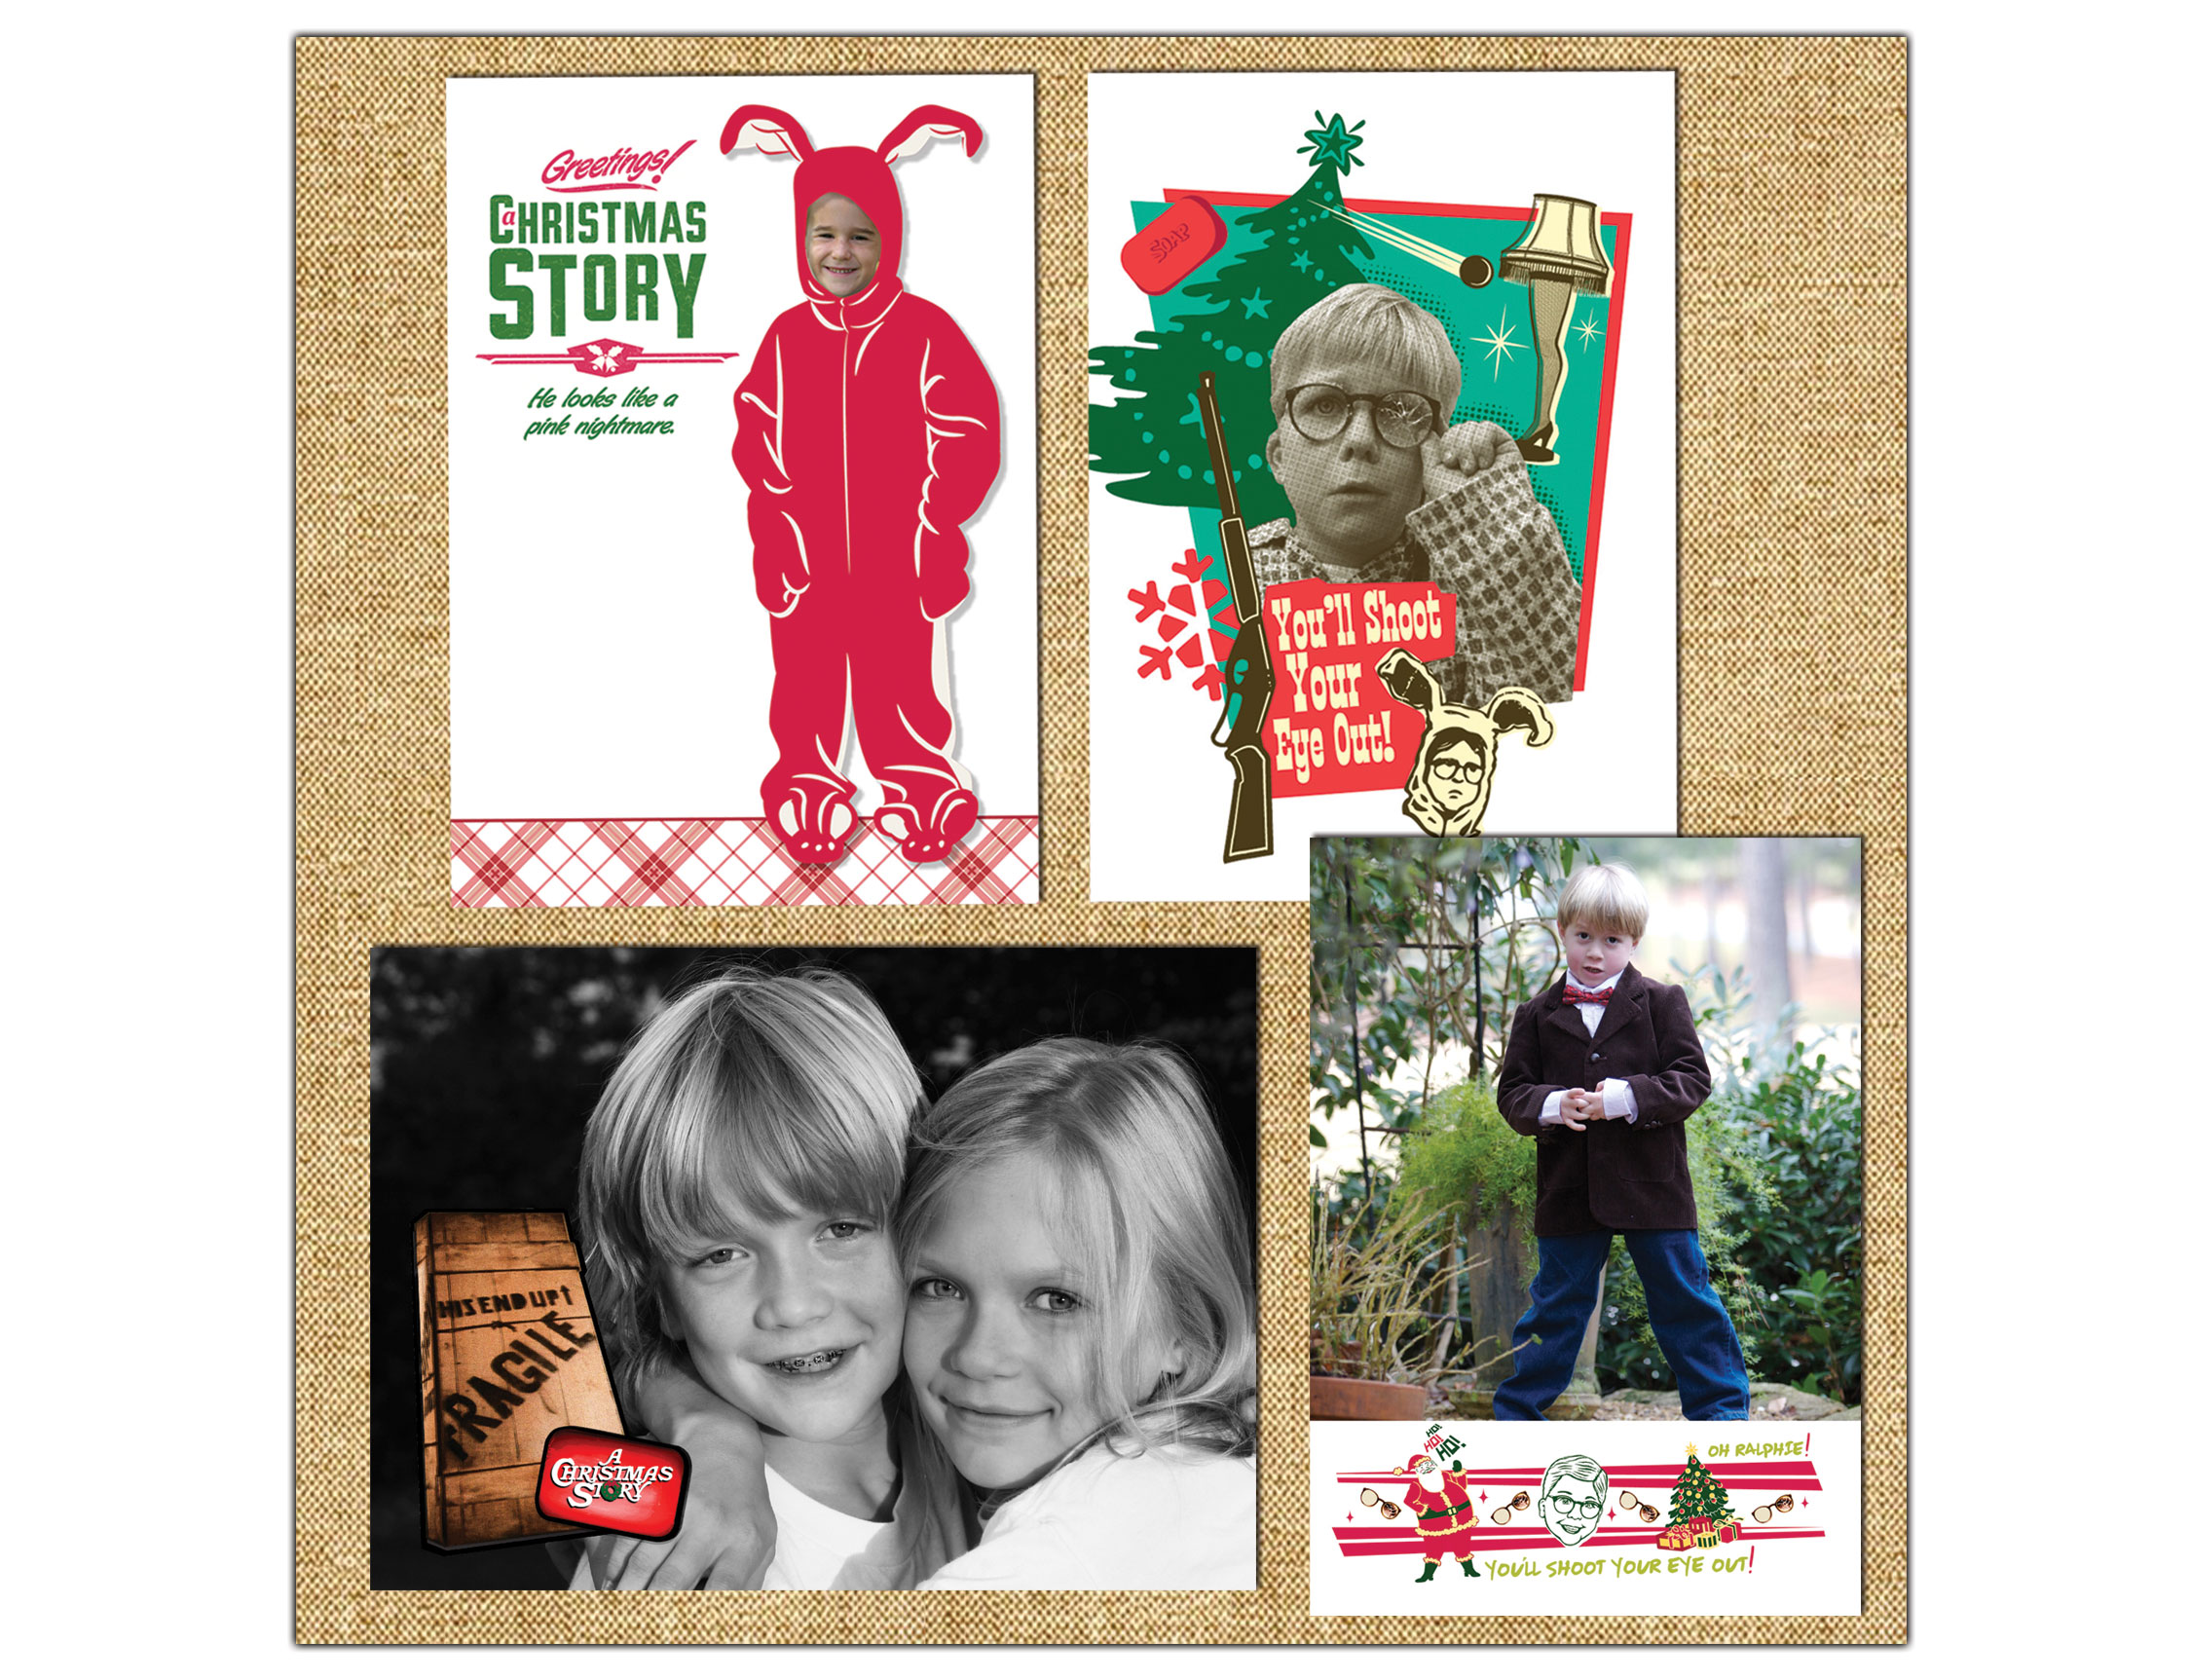 Clockwise from top left: Pink Nightmare Holiday Photo Card, Shoot Eye Out Holiday Photo Card, Oh Ralphie Holiday Photo Card, and FraGeeLay Holiday Photo Card. Now available for purchase at  PaperStyle.com